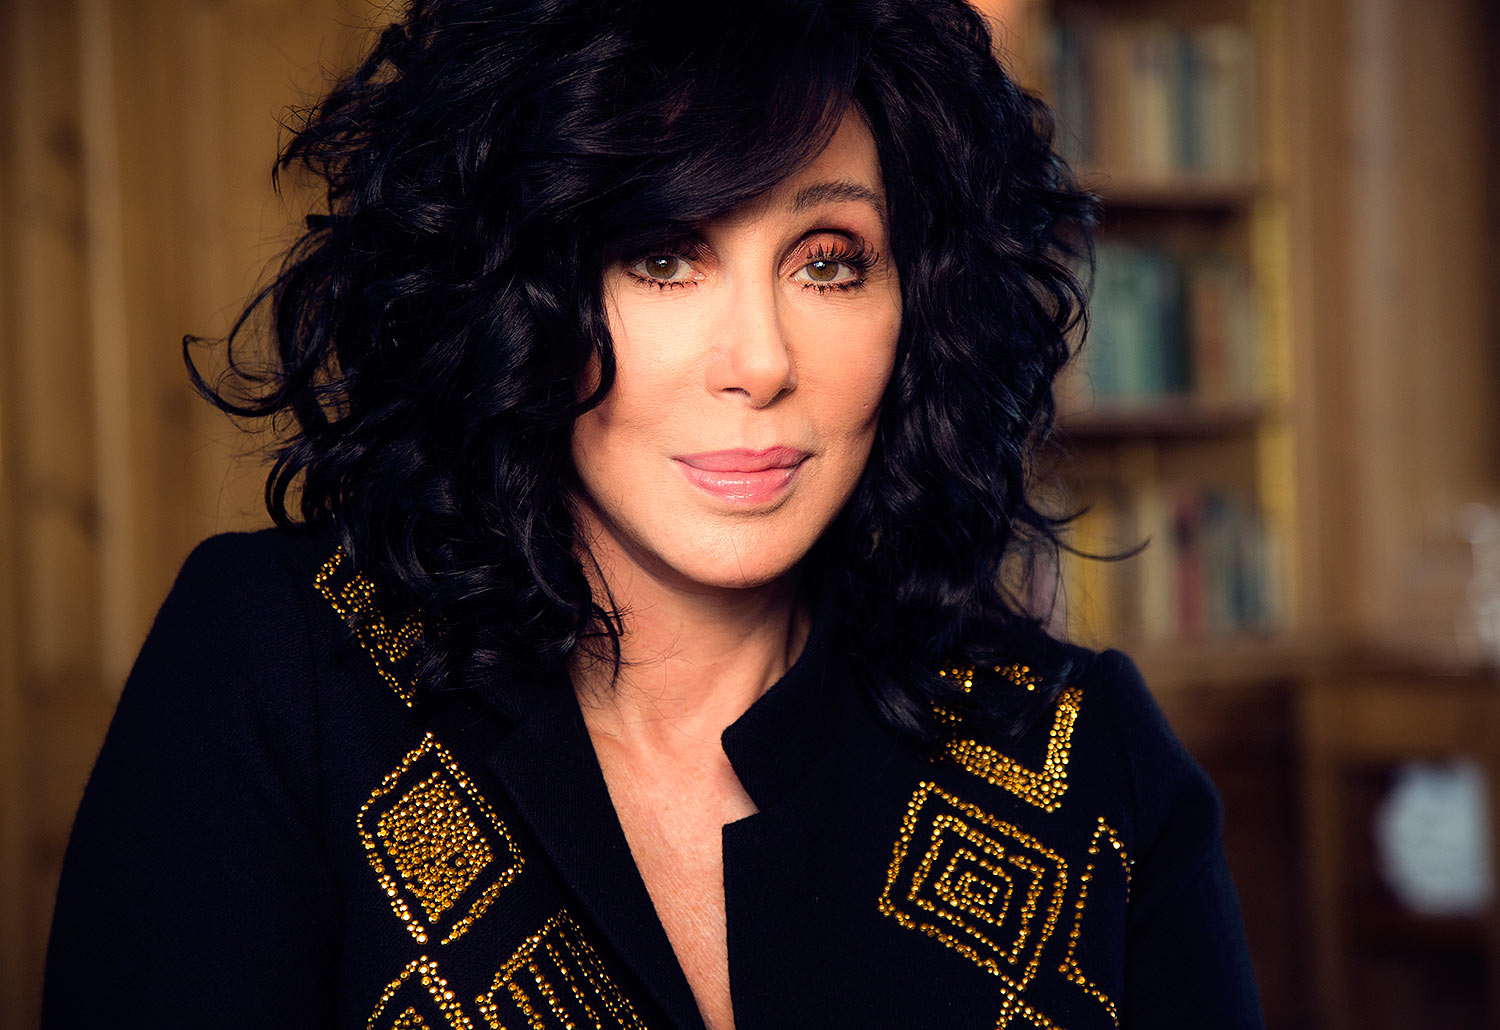 Cher-image-cher-36243837-1500-1030